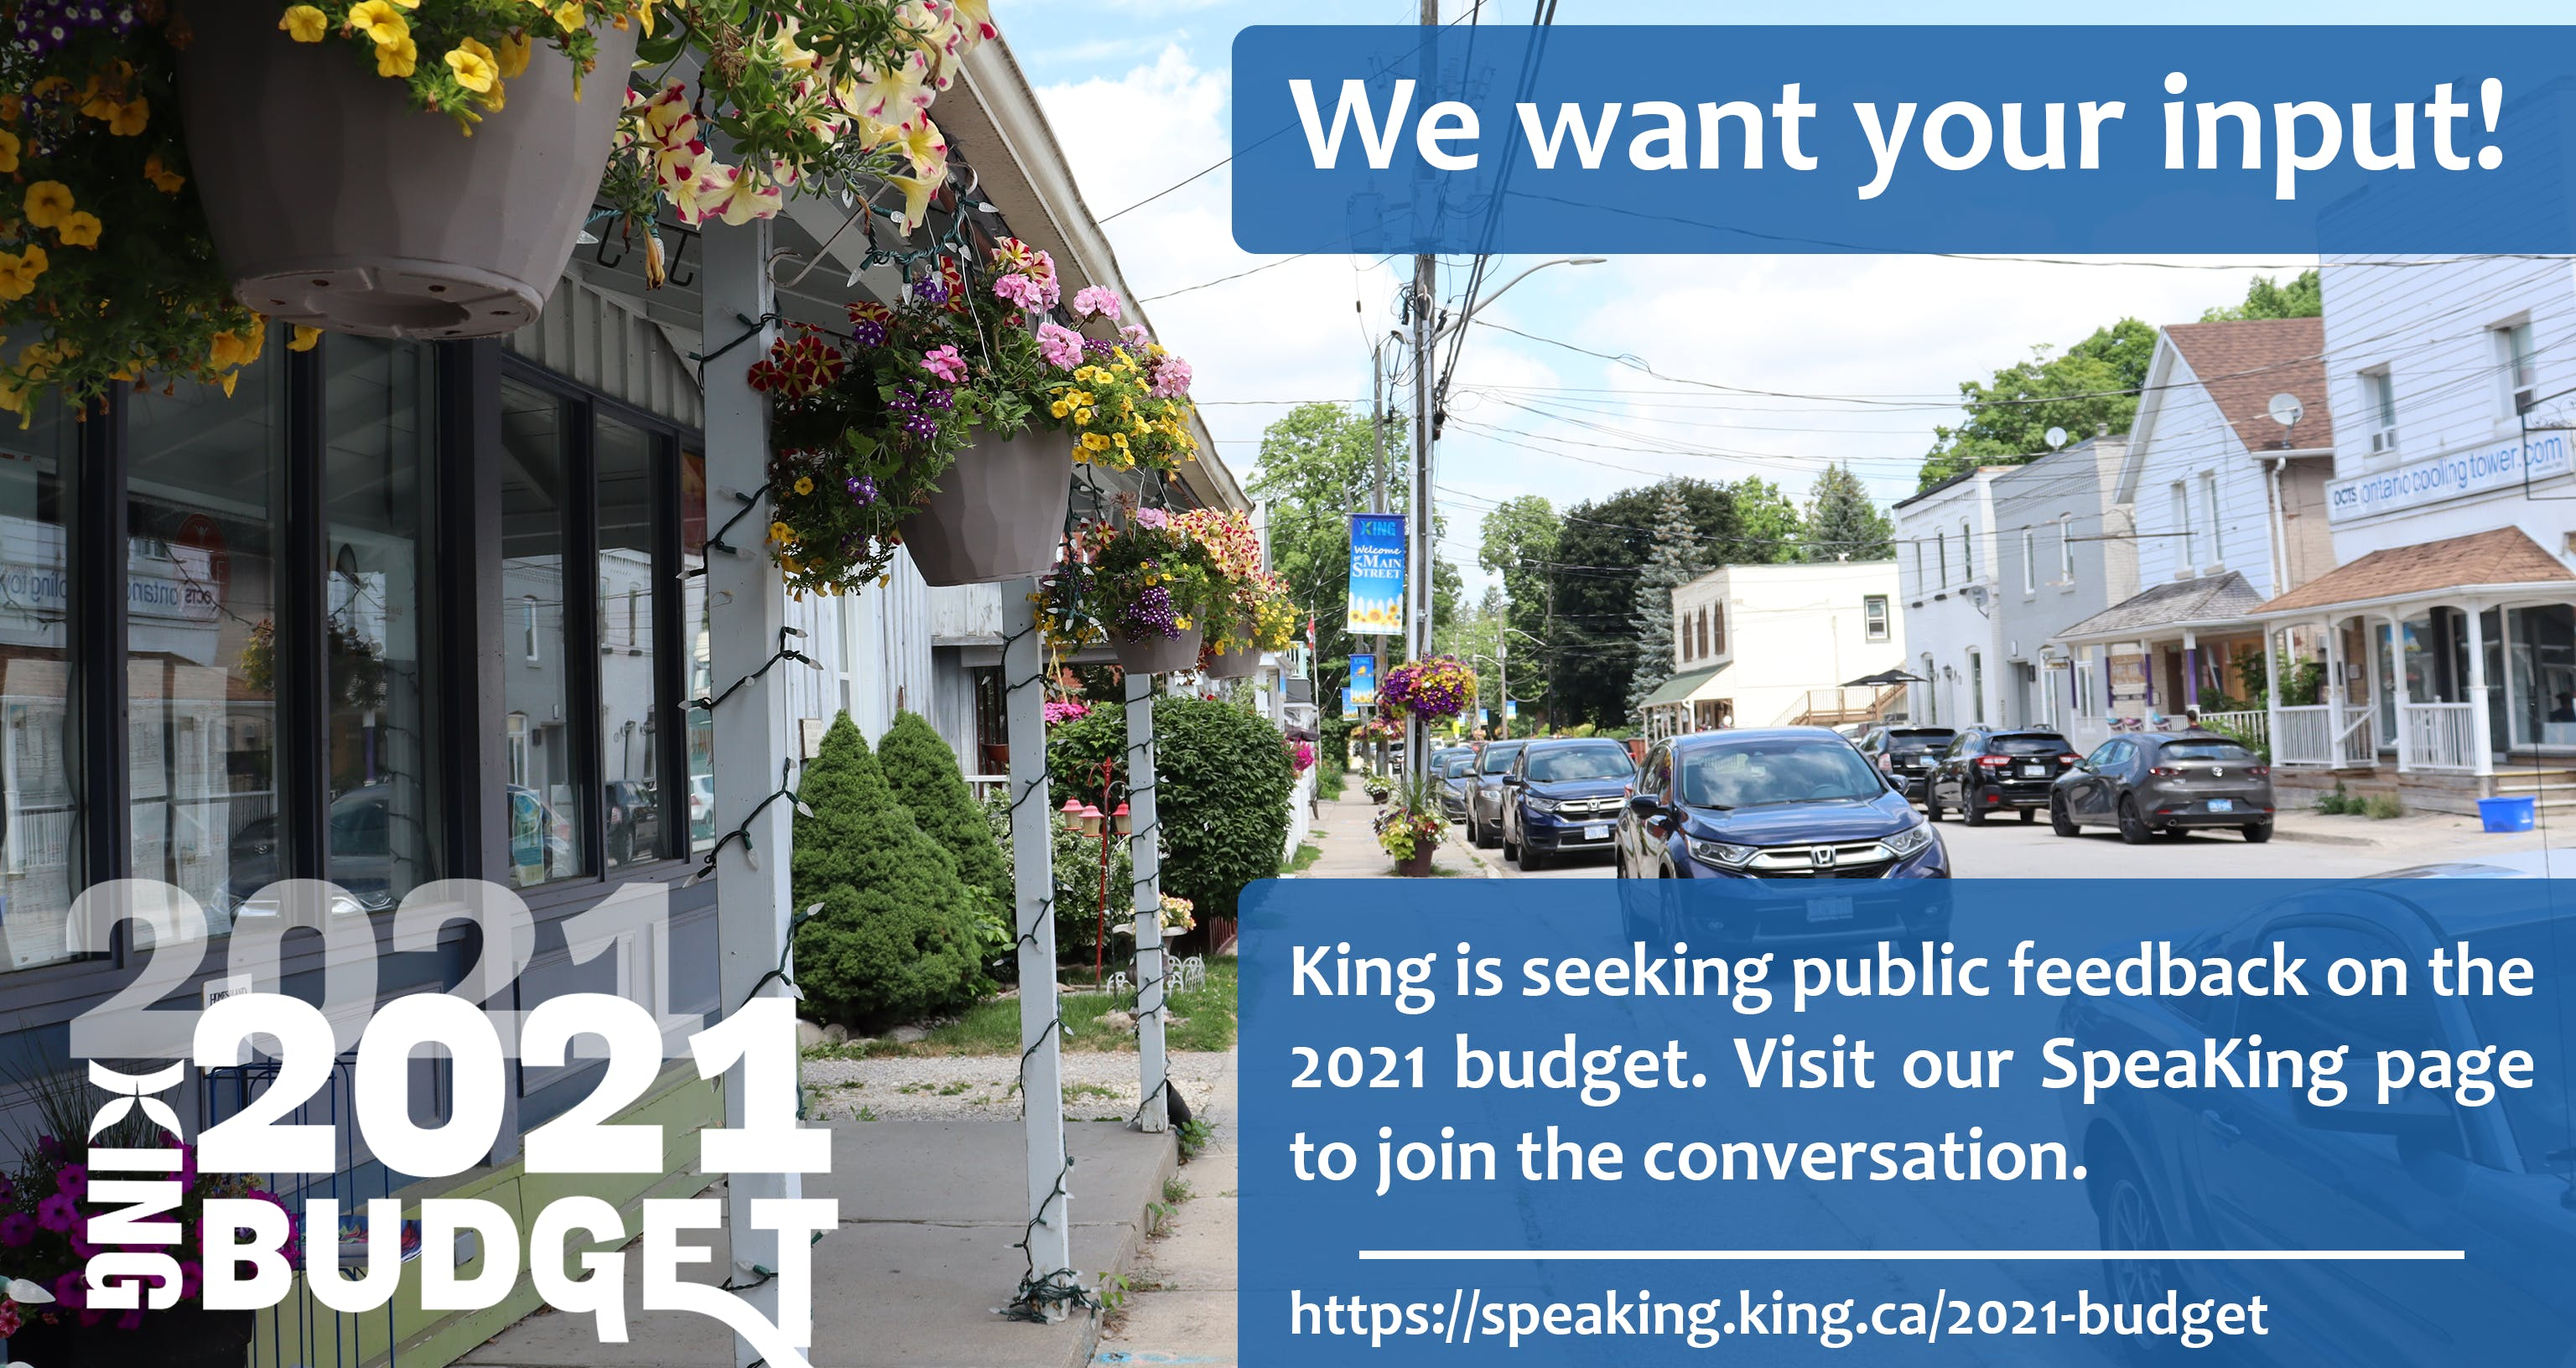 King is seeking public feedback on the 2021 budget.